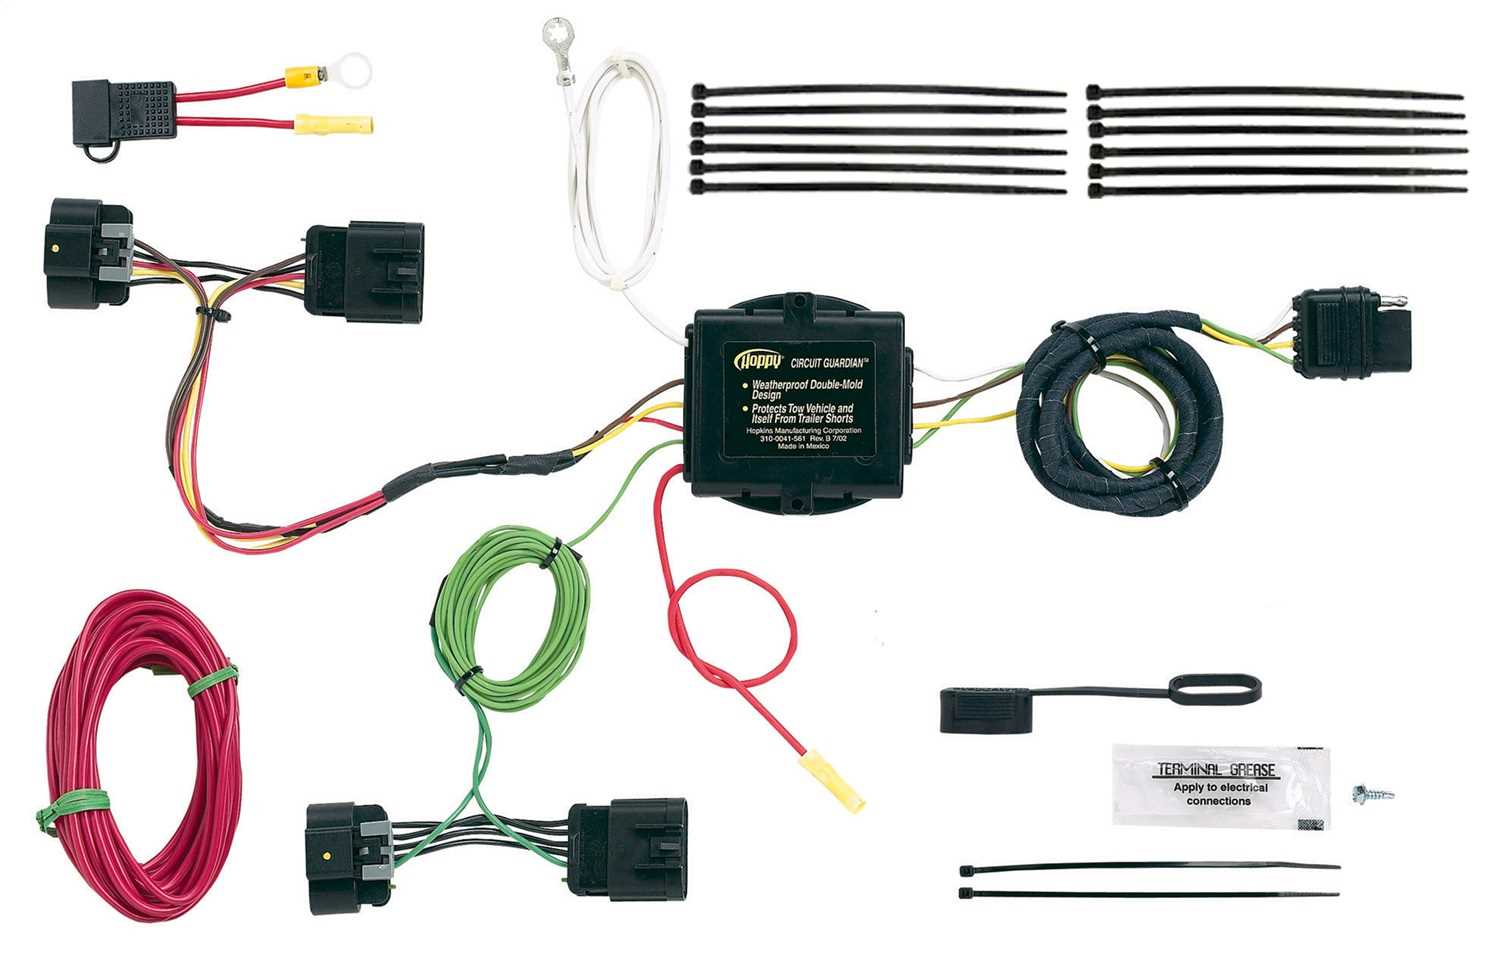 11141315 Hopkins Towing Solution Plug-In Simple® Vehicle To Trailer on trailer plugs, trailer brakes, trailer generator, trailer fuses, trailer hitch harness, trailer mounting brackets,